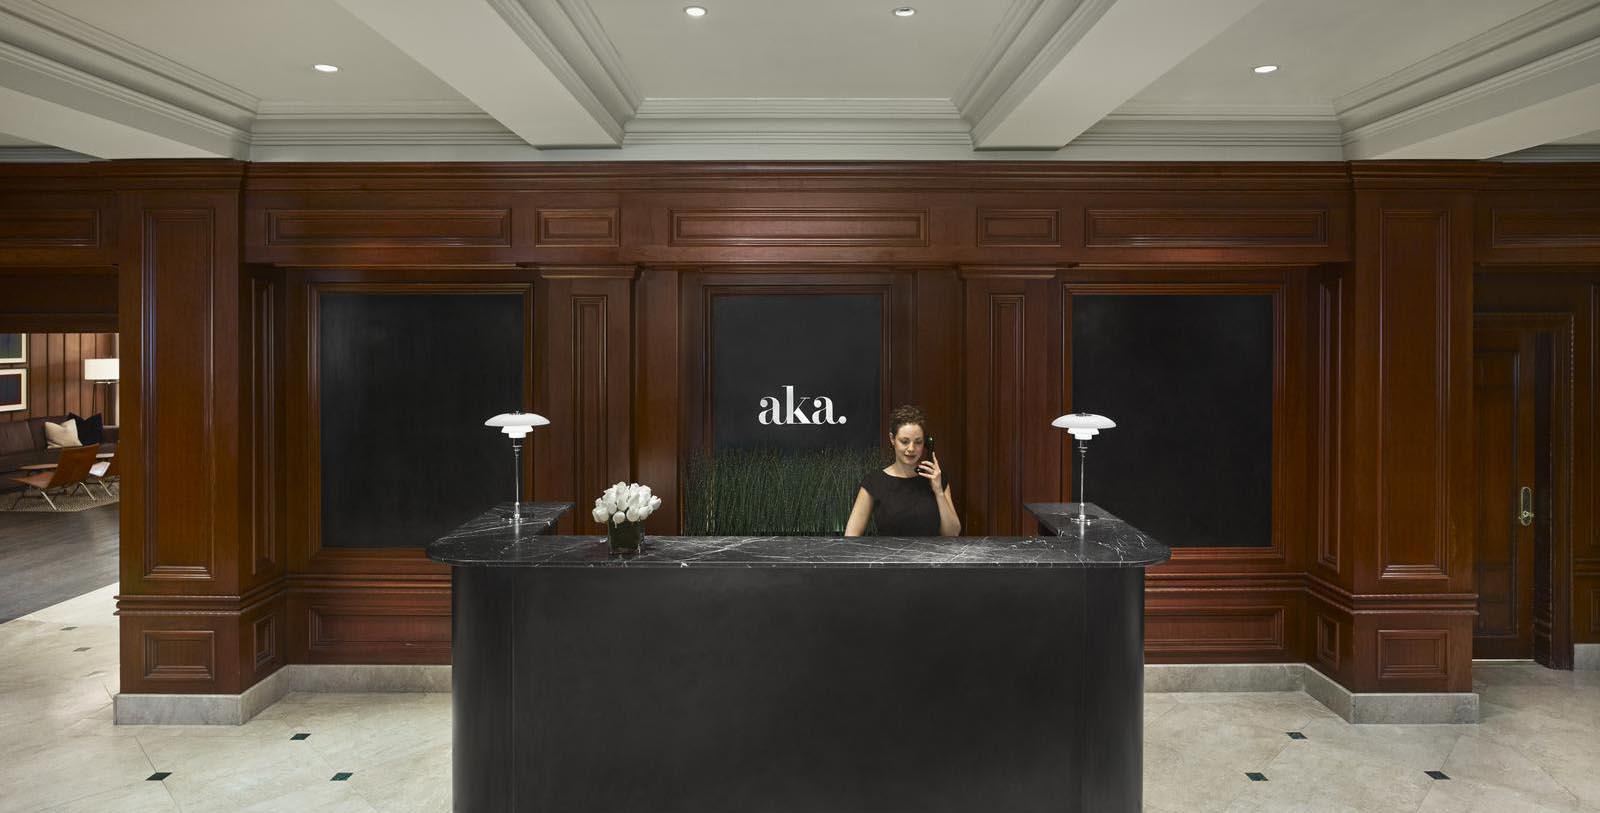 Image of Hotel Lobby Front Desk at AKA Sutton Place, 1929, Member of Historic Hotels of America, in New York, New York, Explore